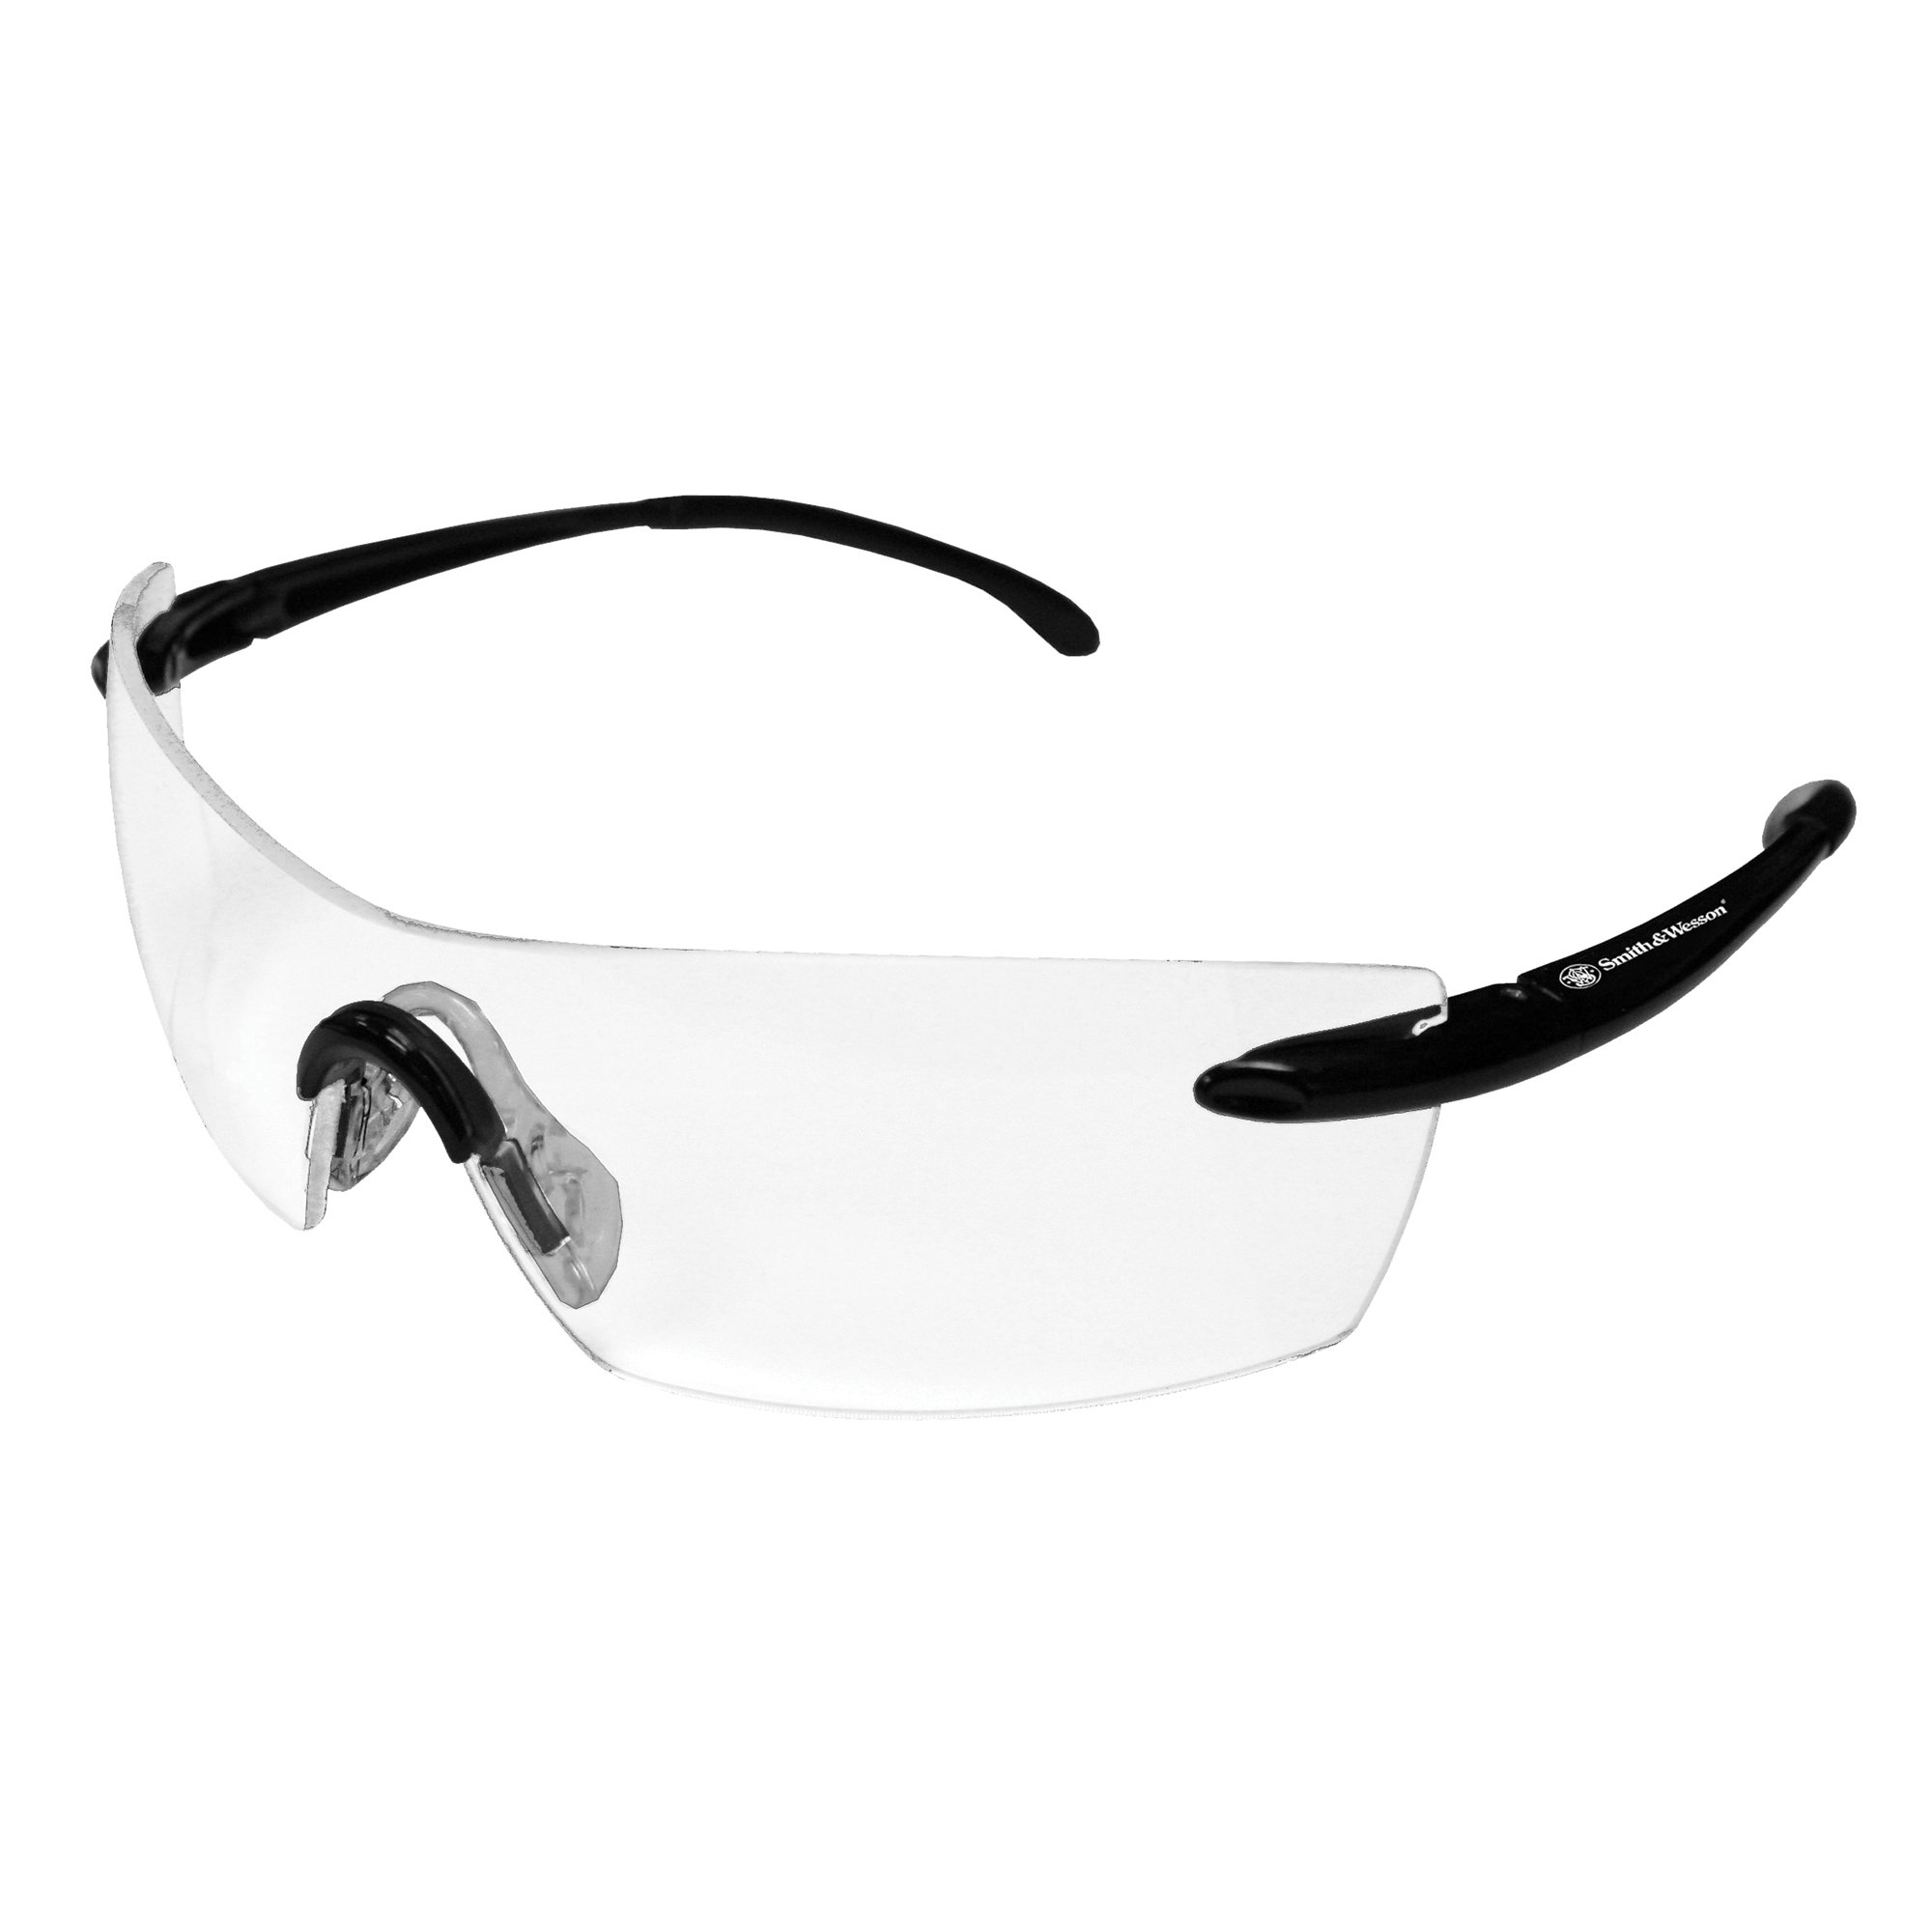 Smith & Wesson Caliber Safety Glasses (23006), Black Frame, Clear Anti-Fog Lens, 12 Pairs / Case